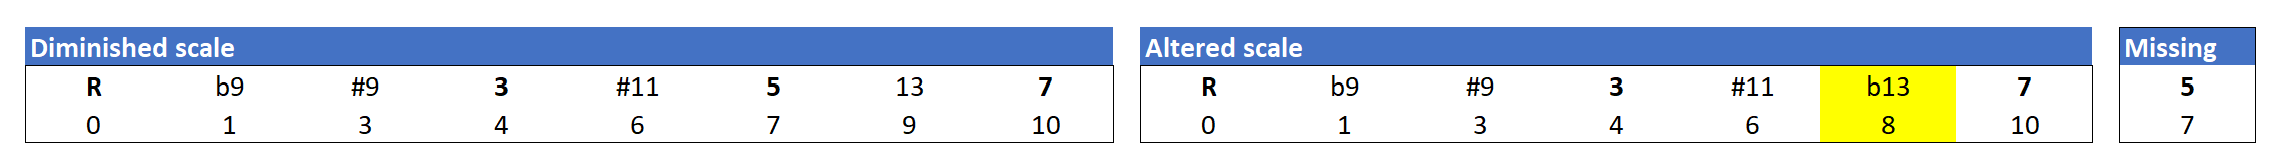 Comparison of the altered scale and the diminished scale